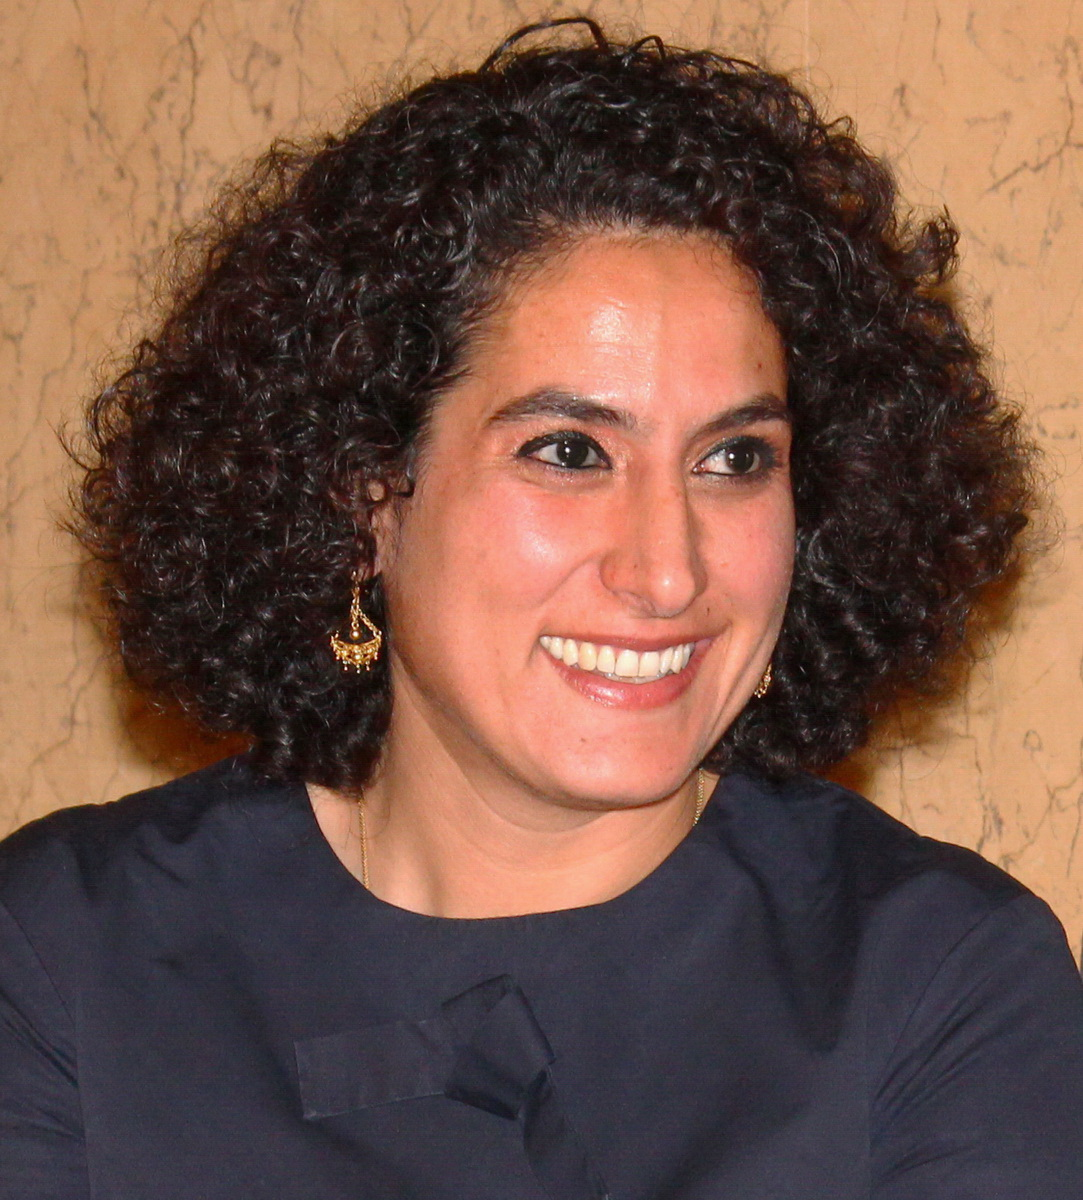 Image of Shirana Shahbazi from Wikidata